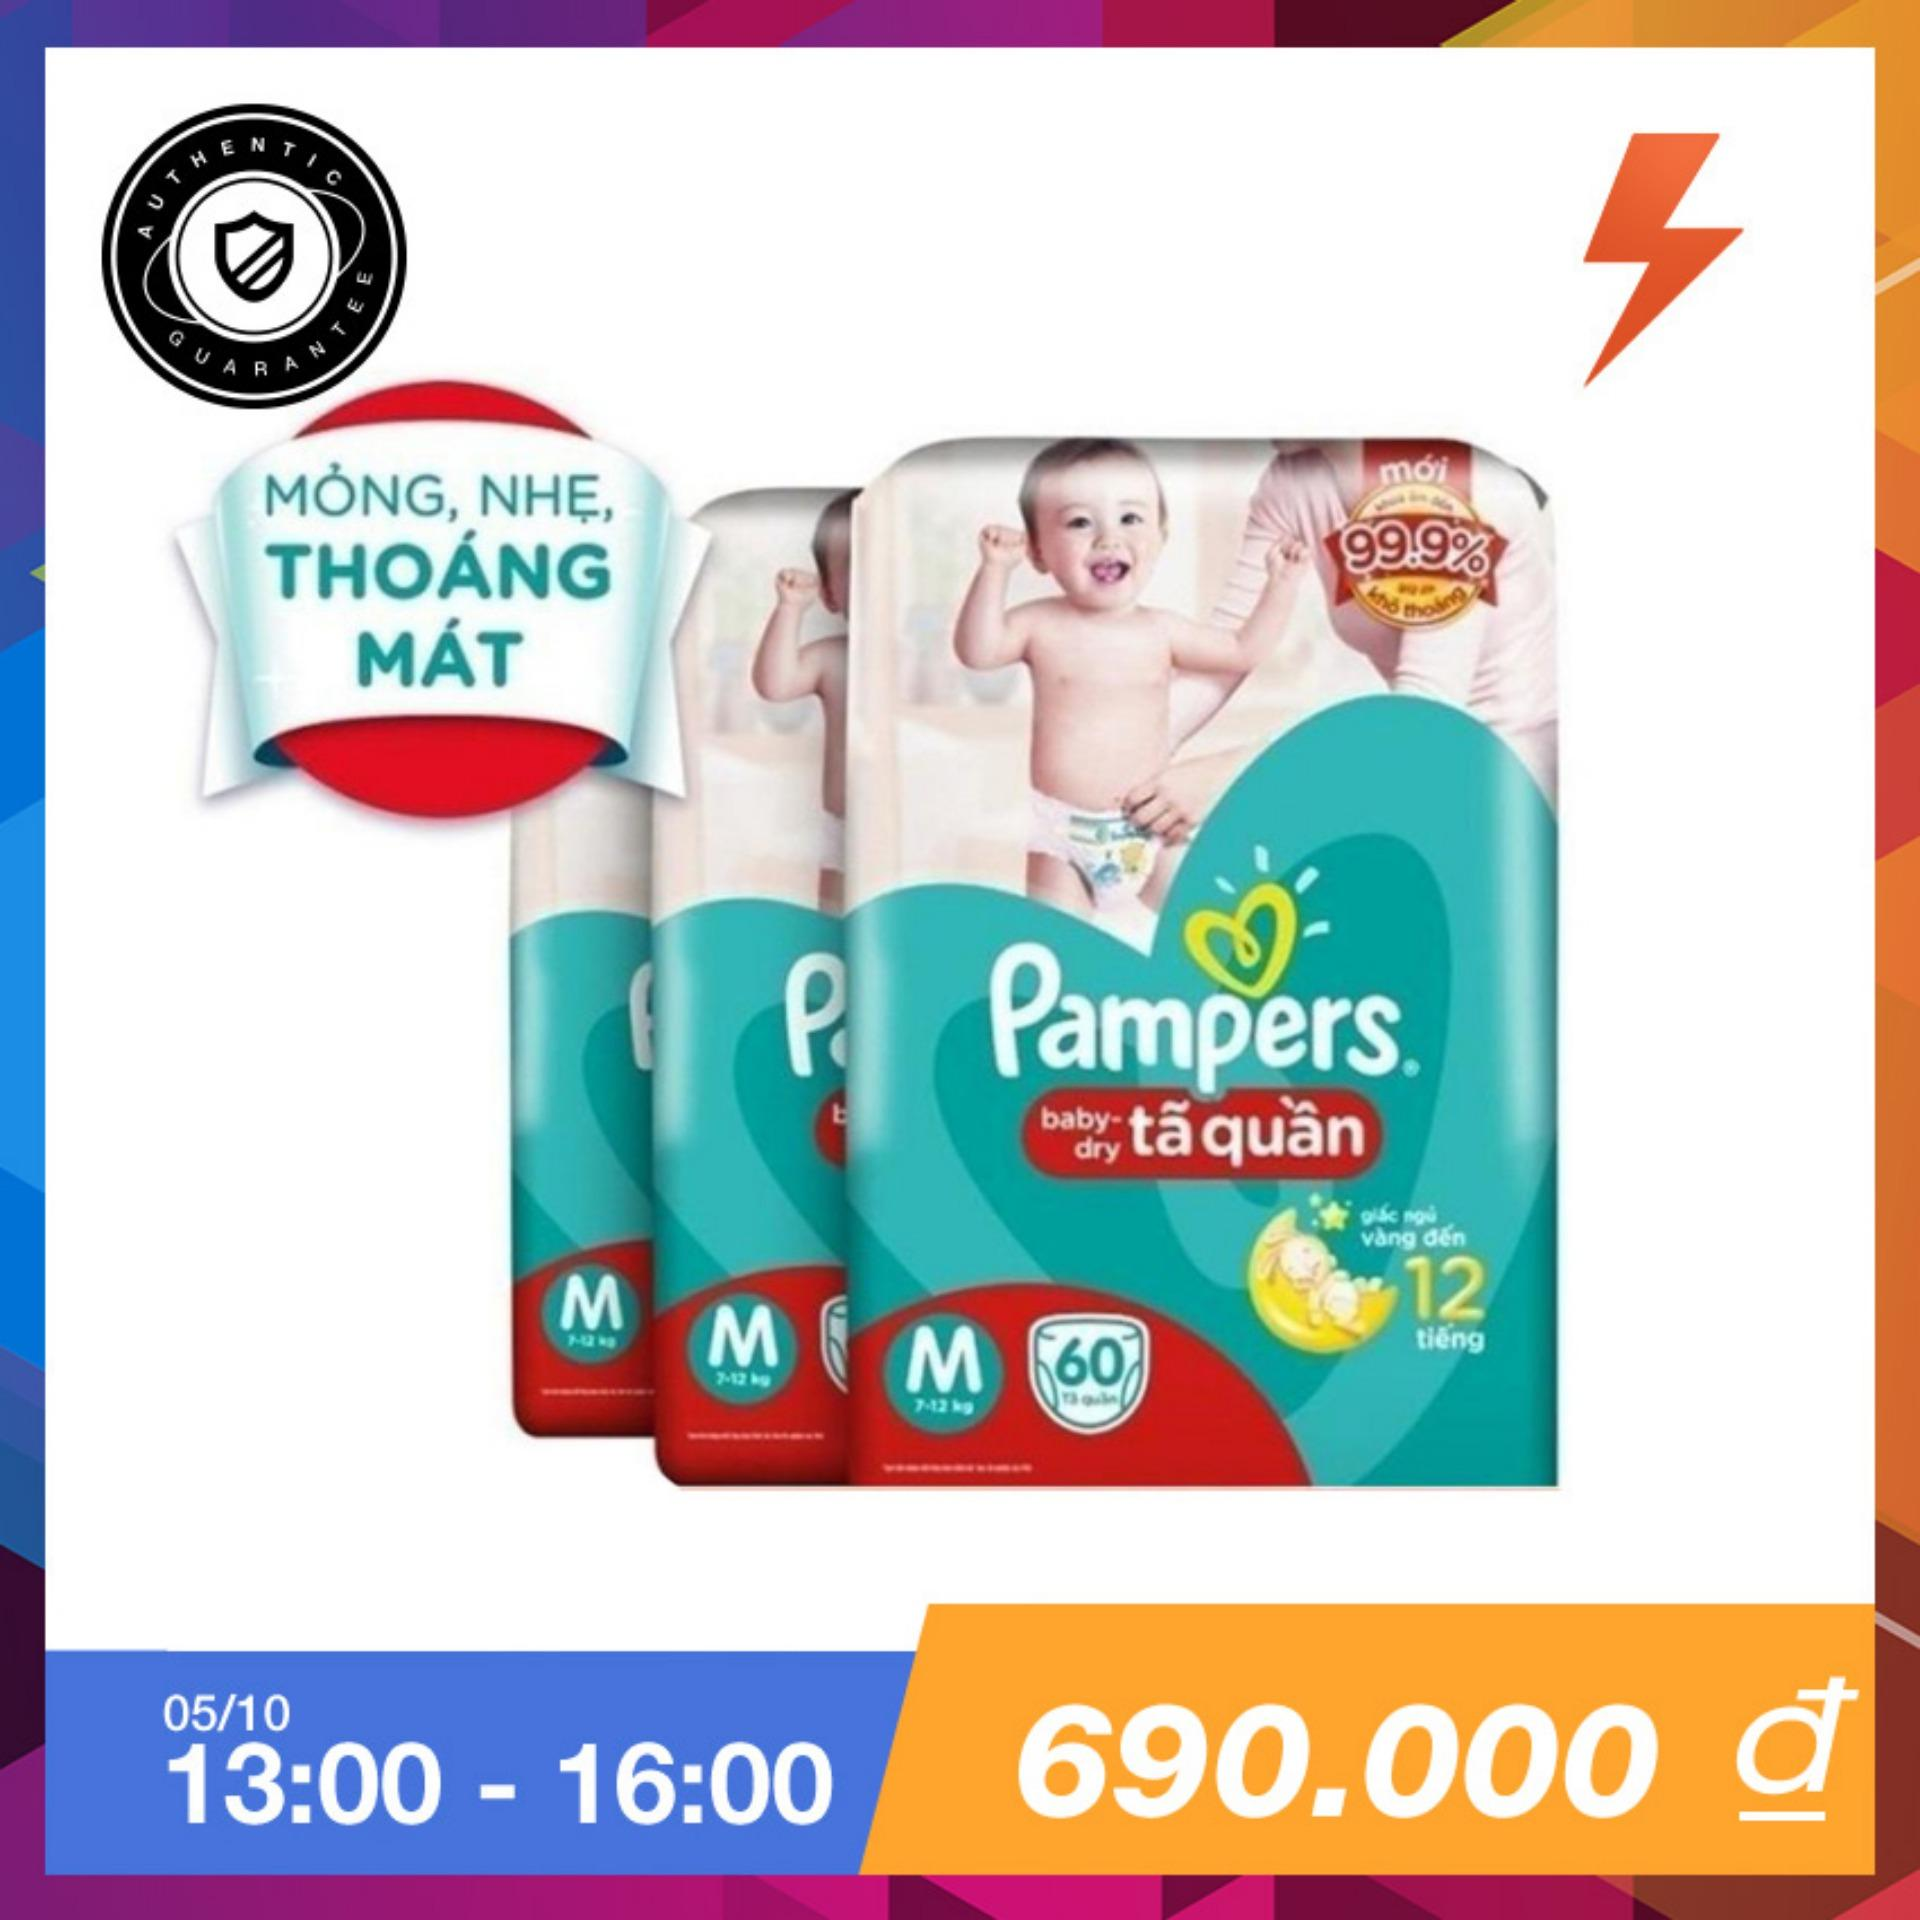 Bán Bộ 3 Ta Quần Pampers Size M 60 Miếng 7 12Kg Pampers Trực Tuyến